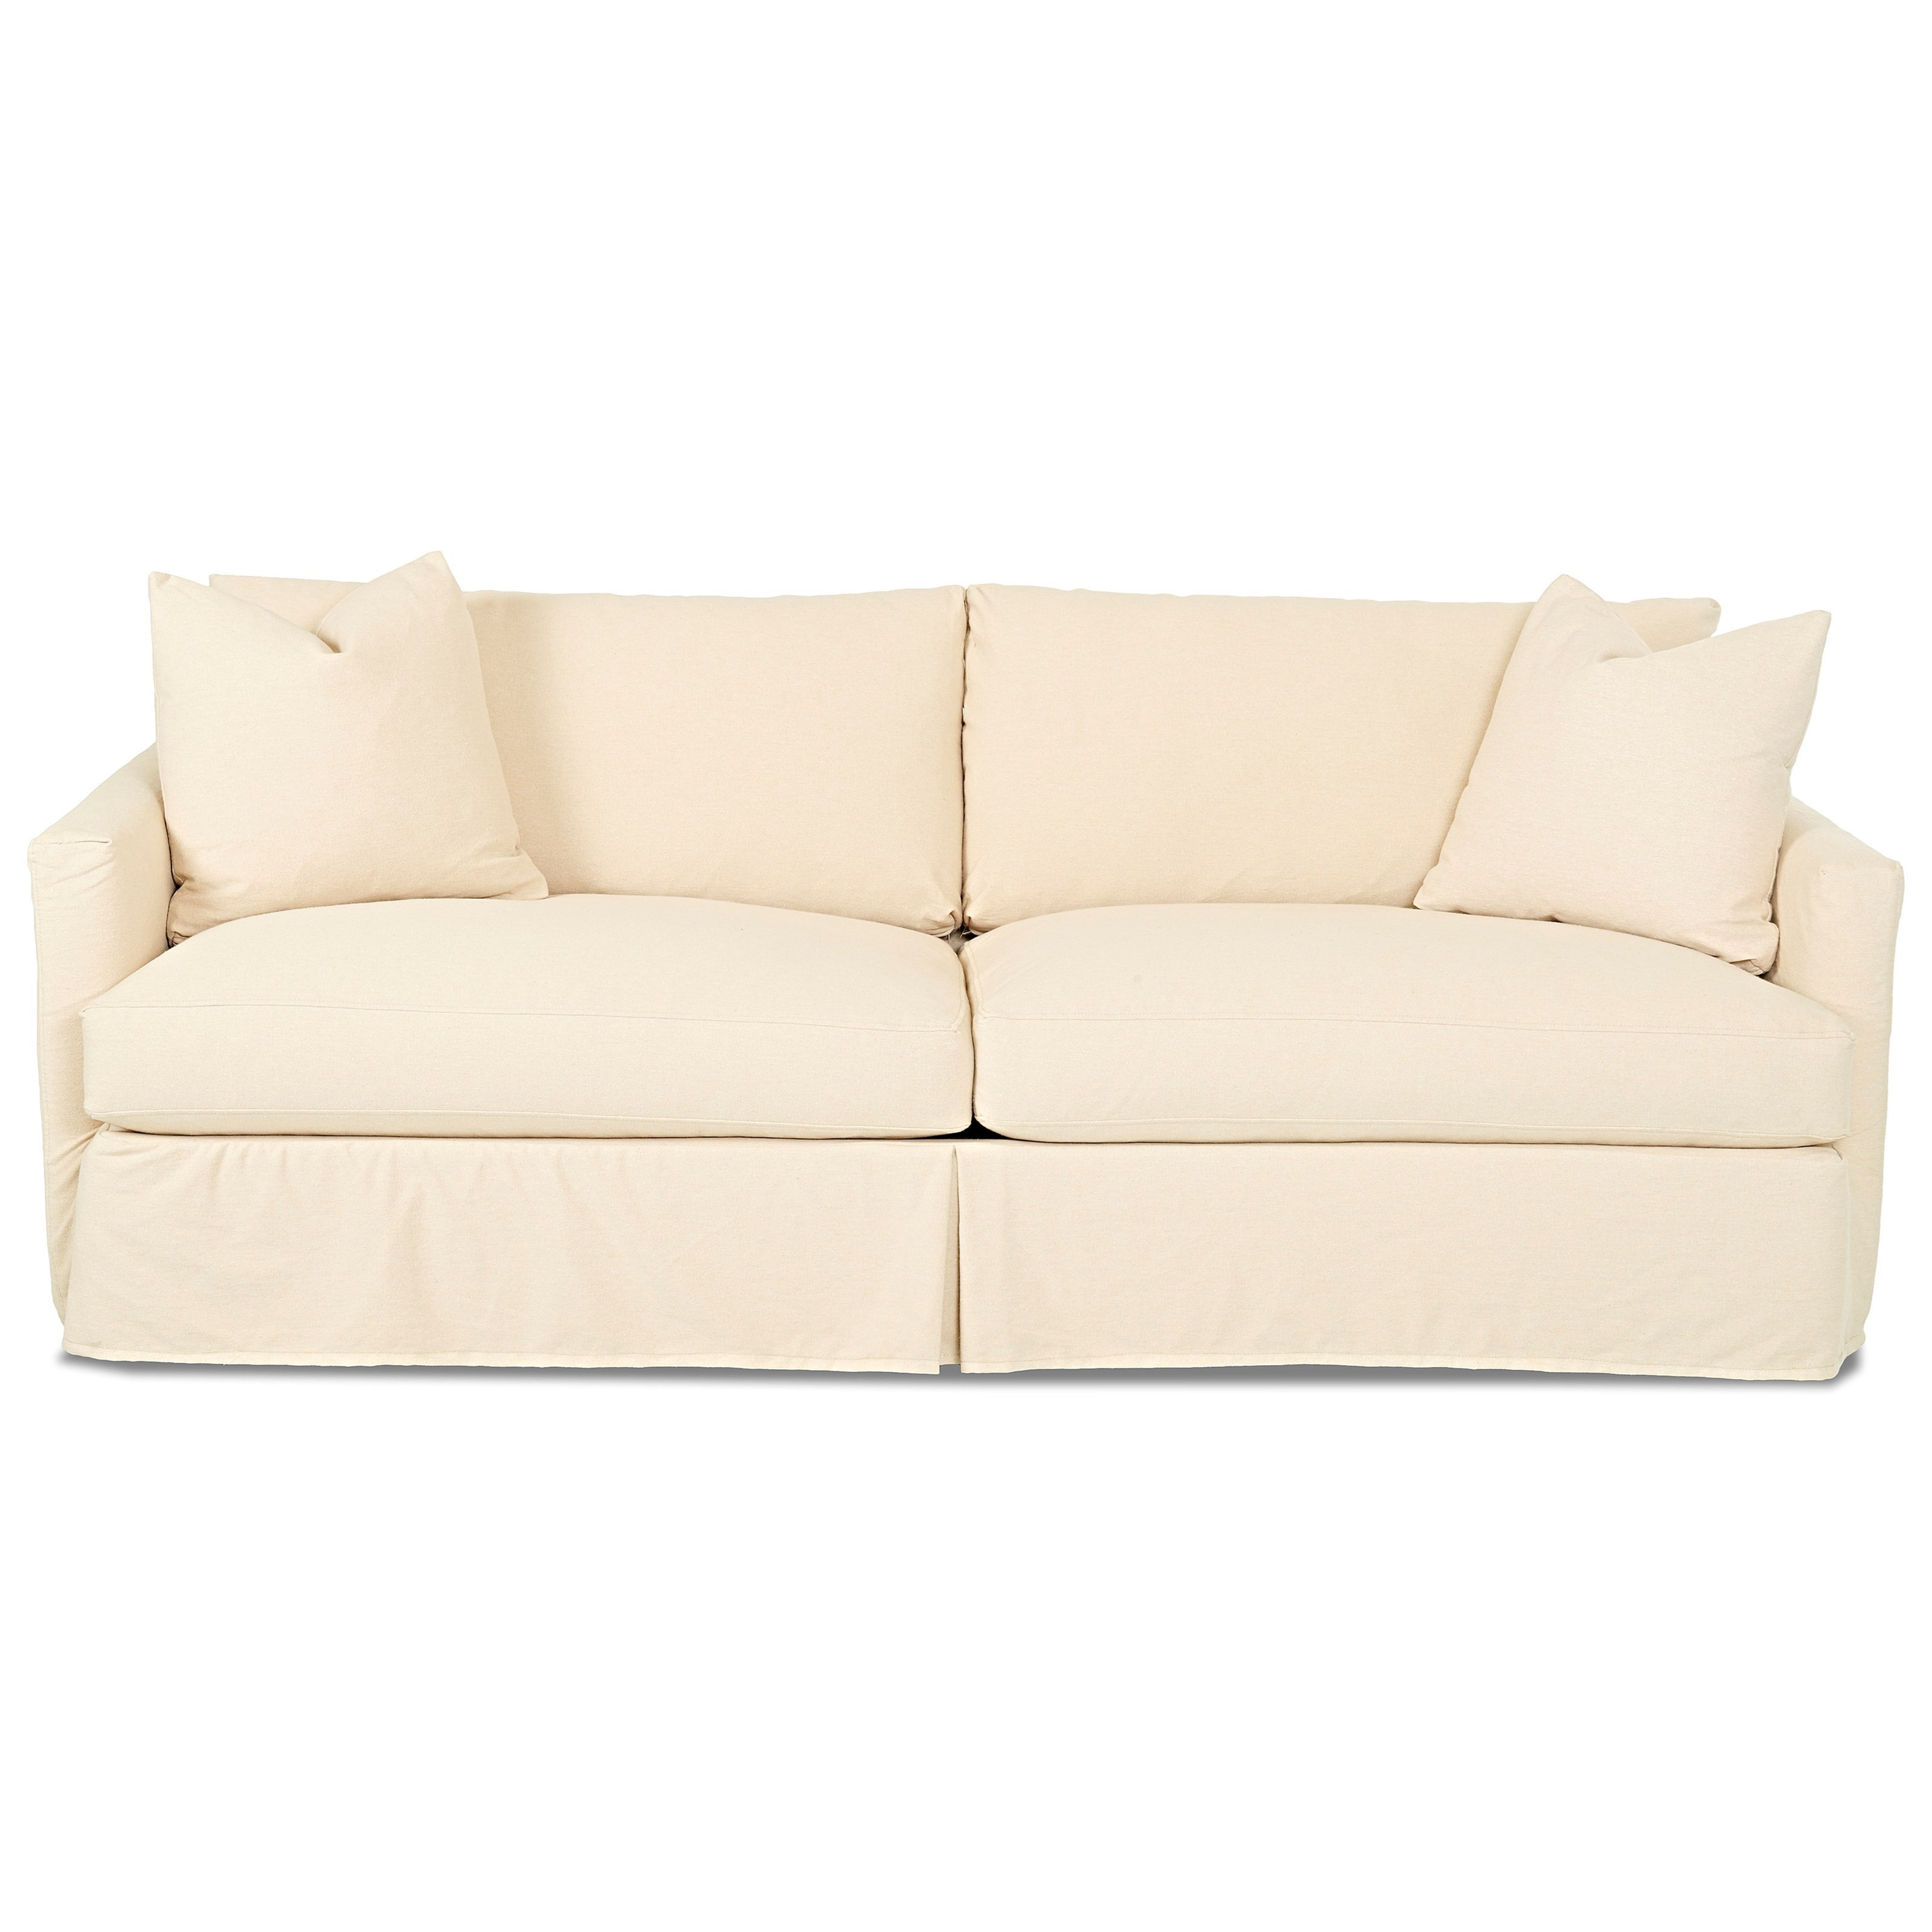 Klaussner Leisure Extra Sofa with Slipcover